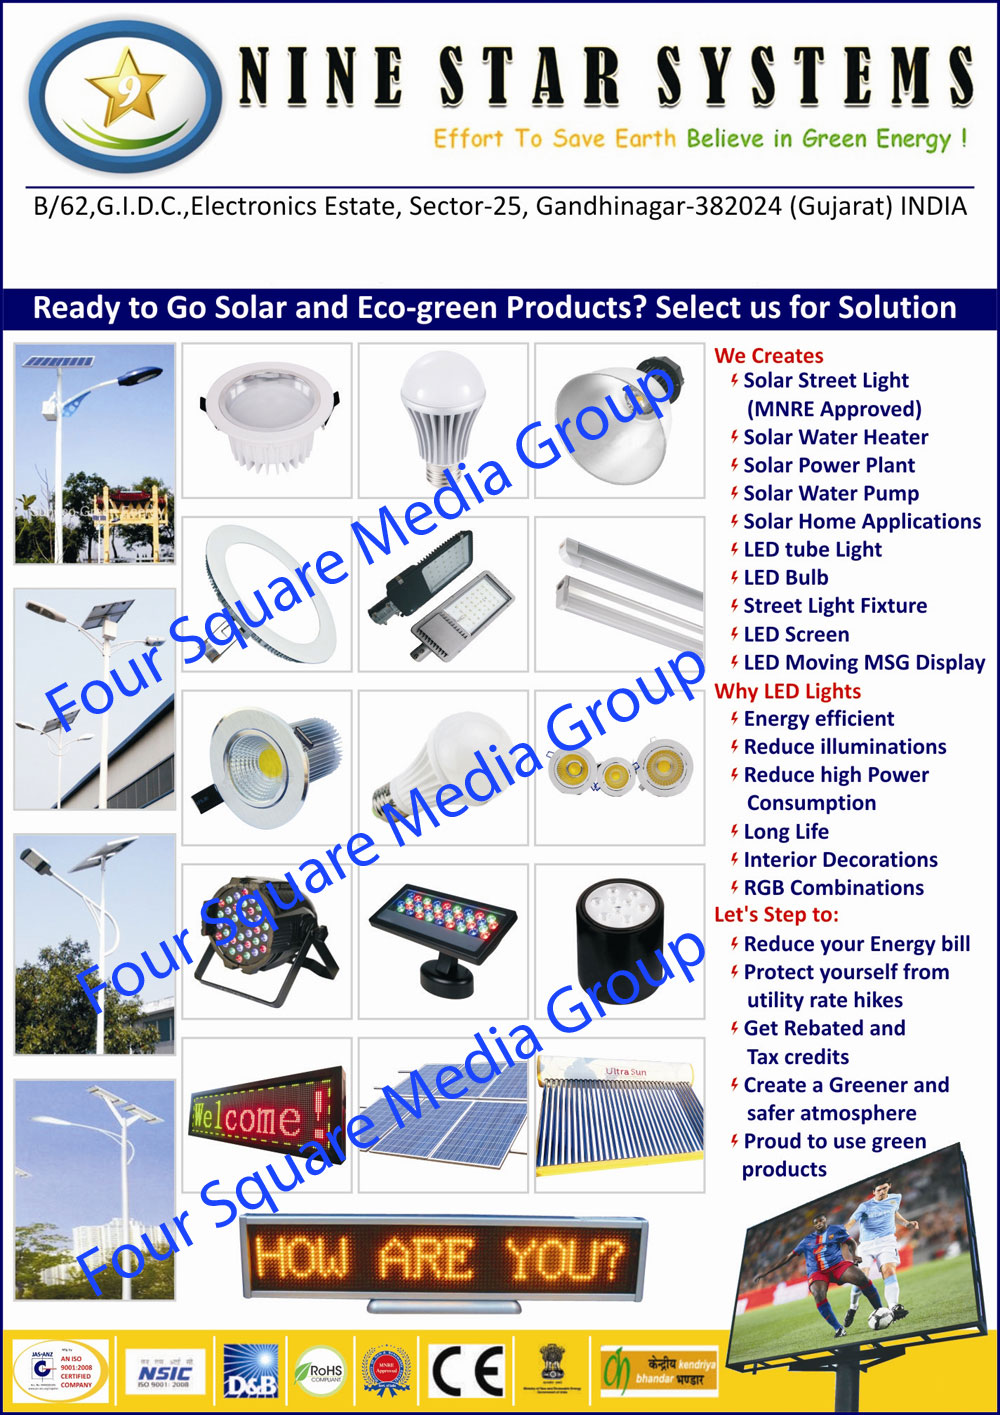 Solar Street Lights, Solar Water Heaters, Solar Power Plants, Solar Water Pumps, Solar Home Applications, Solar Tube Lights, Solar Bulbs, Street Light Fixtures, Led Screens, Led Moving MSG Displays